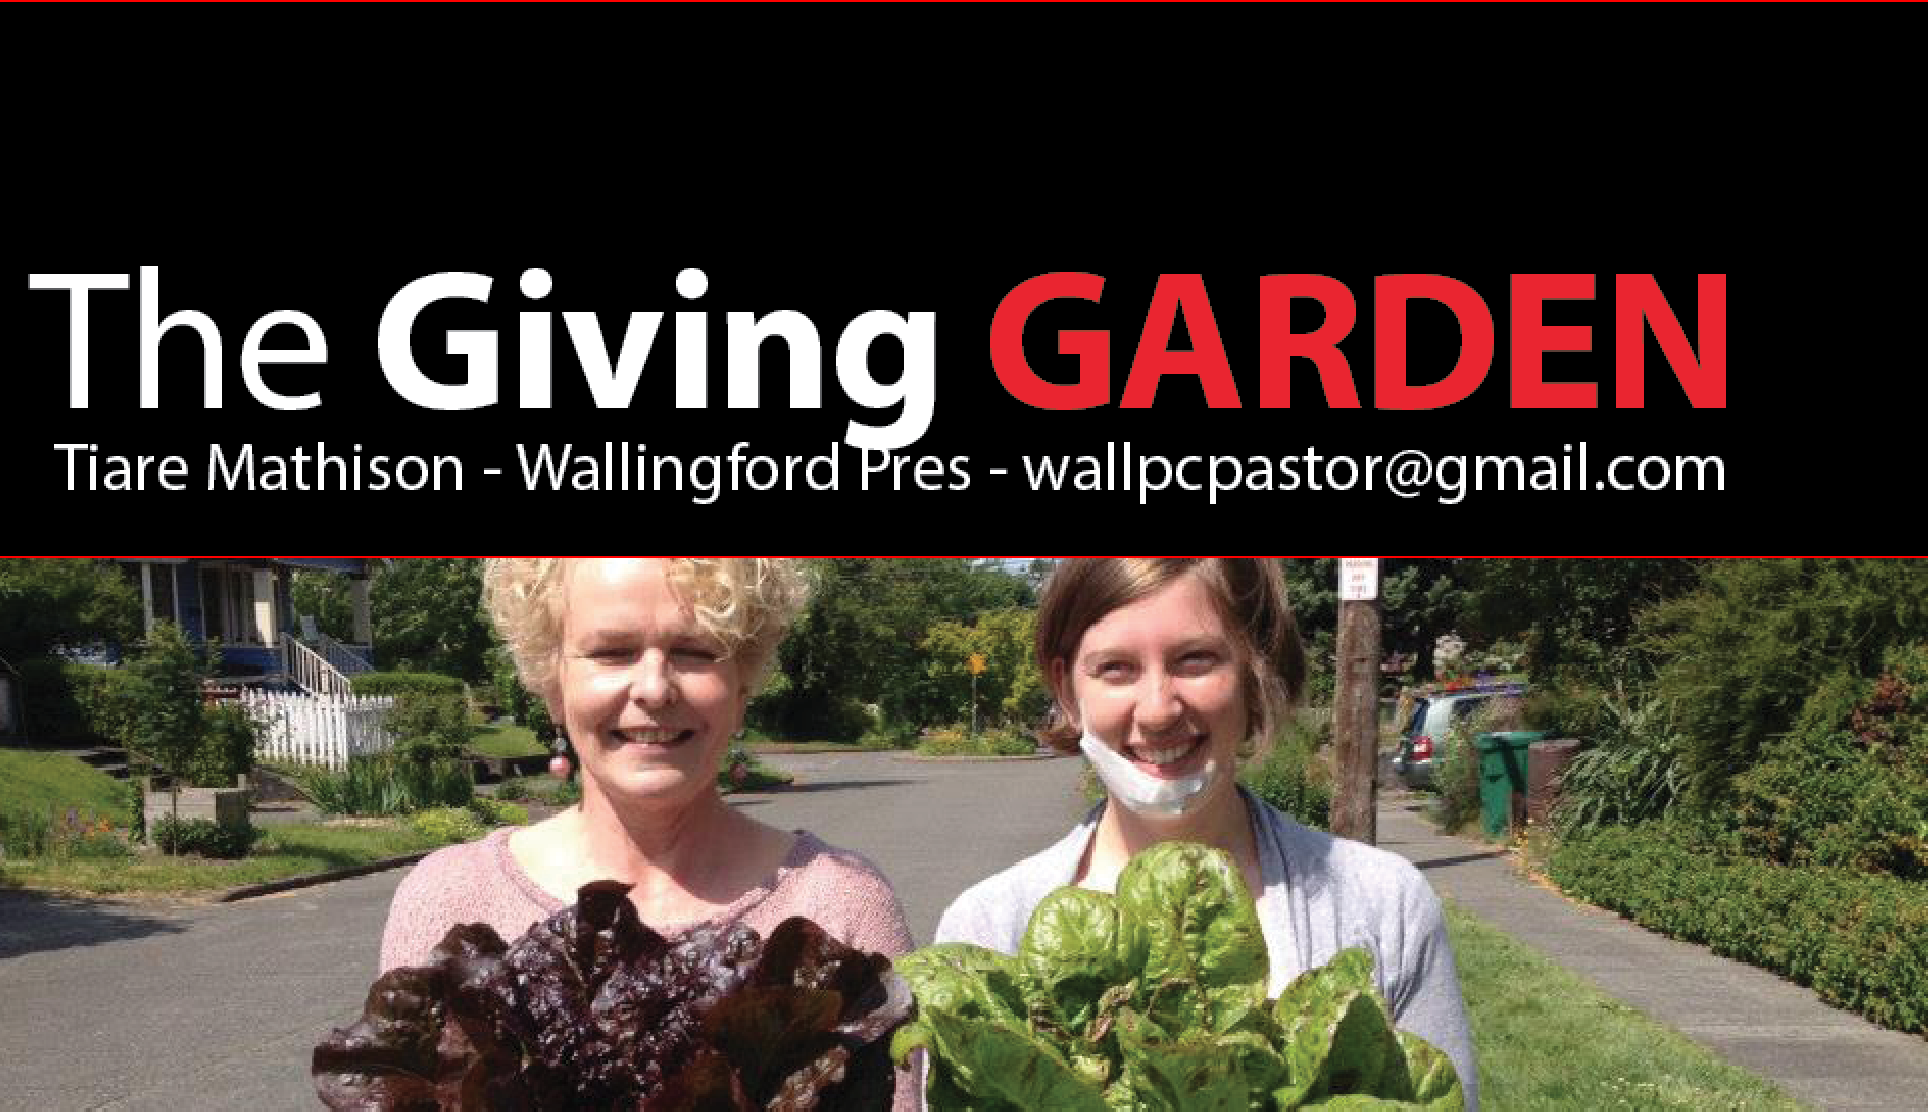 In partnership with Korean Glory and UPC's Ministry with Internationals, Wallingford Presbyterian Church built a vegetable garden on the parking strip of their church.  During their first growing season, they grew and delivered 130 pounds of vegetables to Familyworks, our local foodbank!